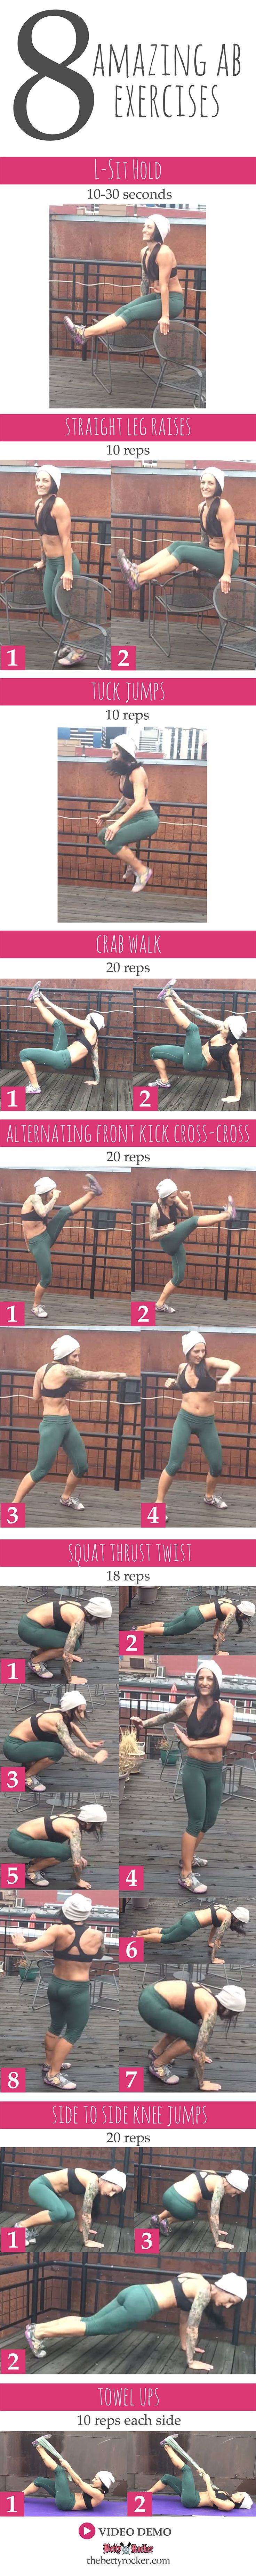 Try this awesome abs circuit - 3 rounds total!